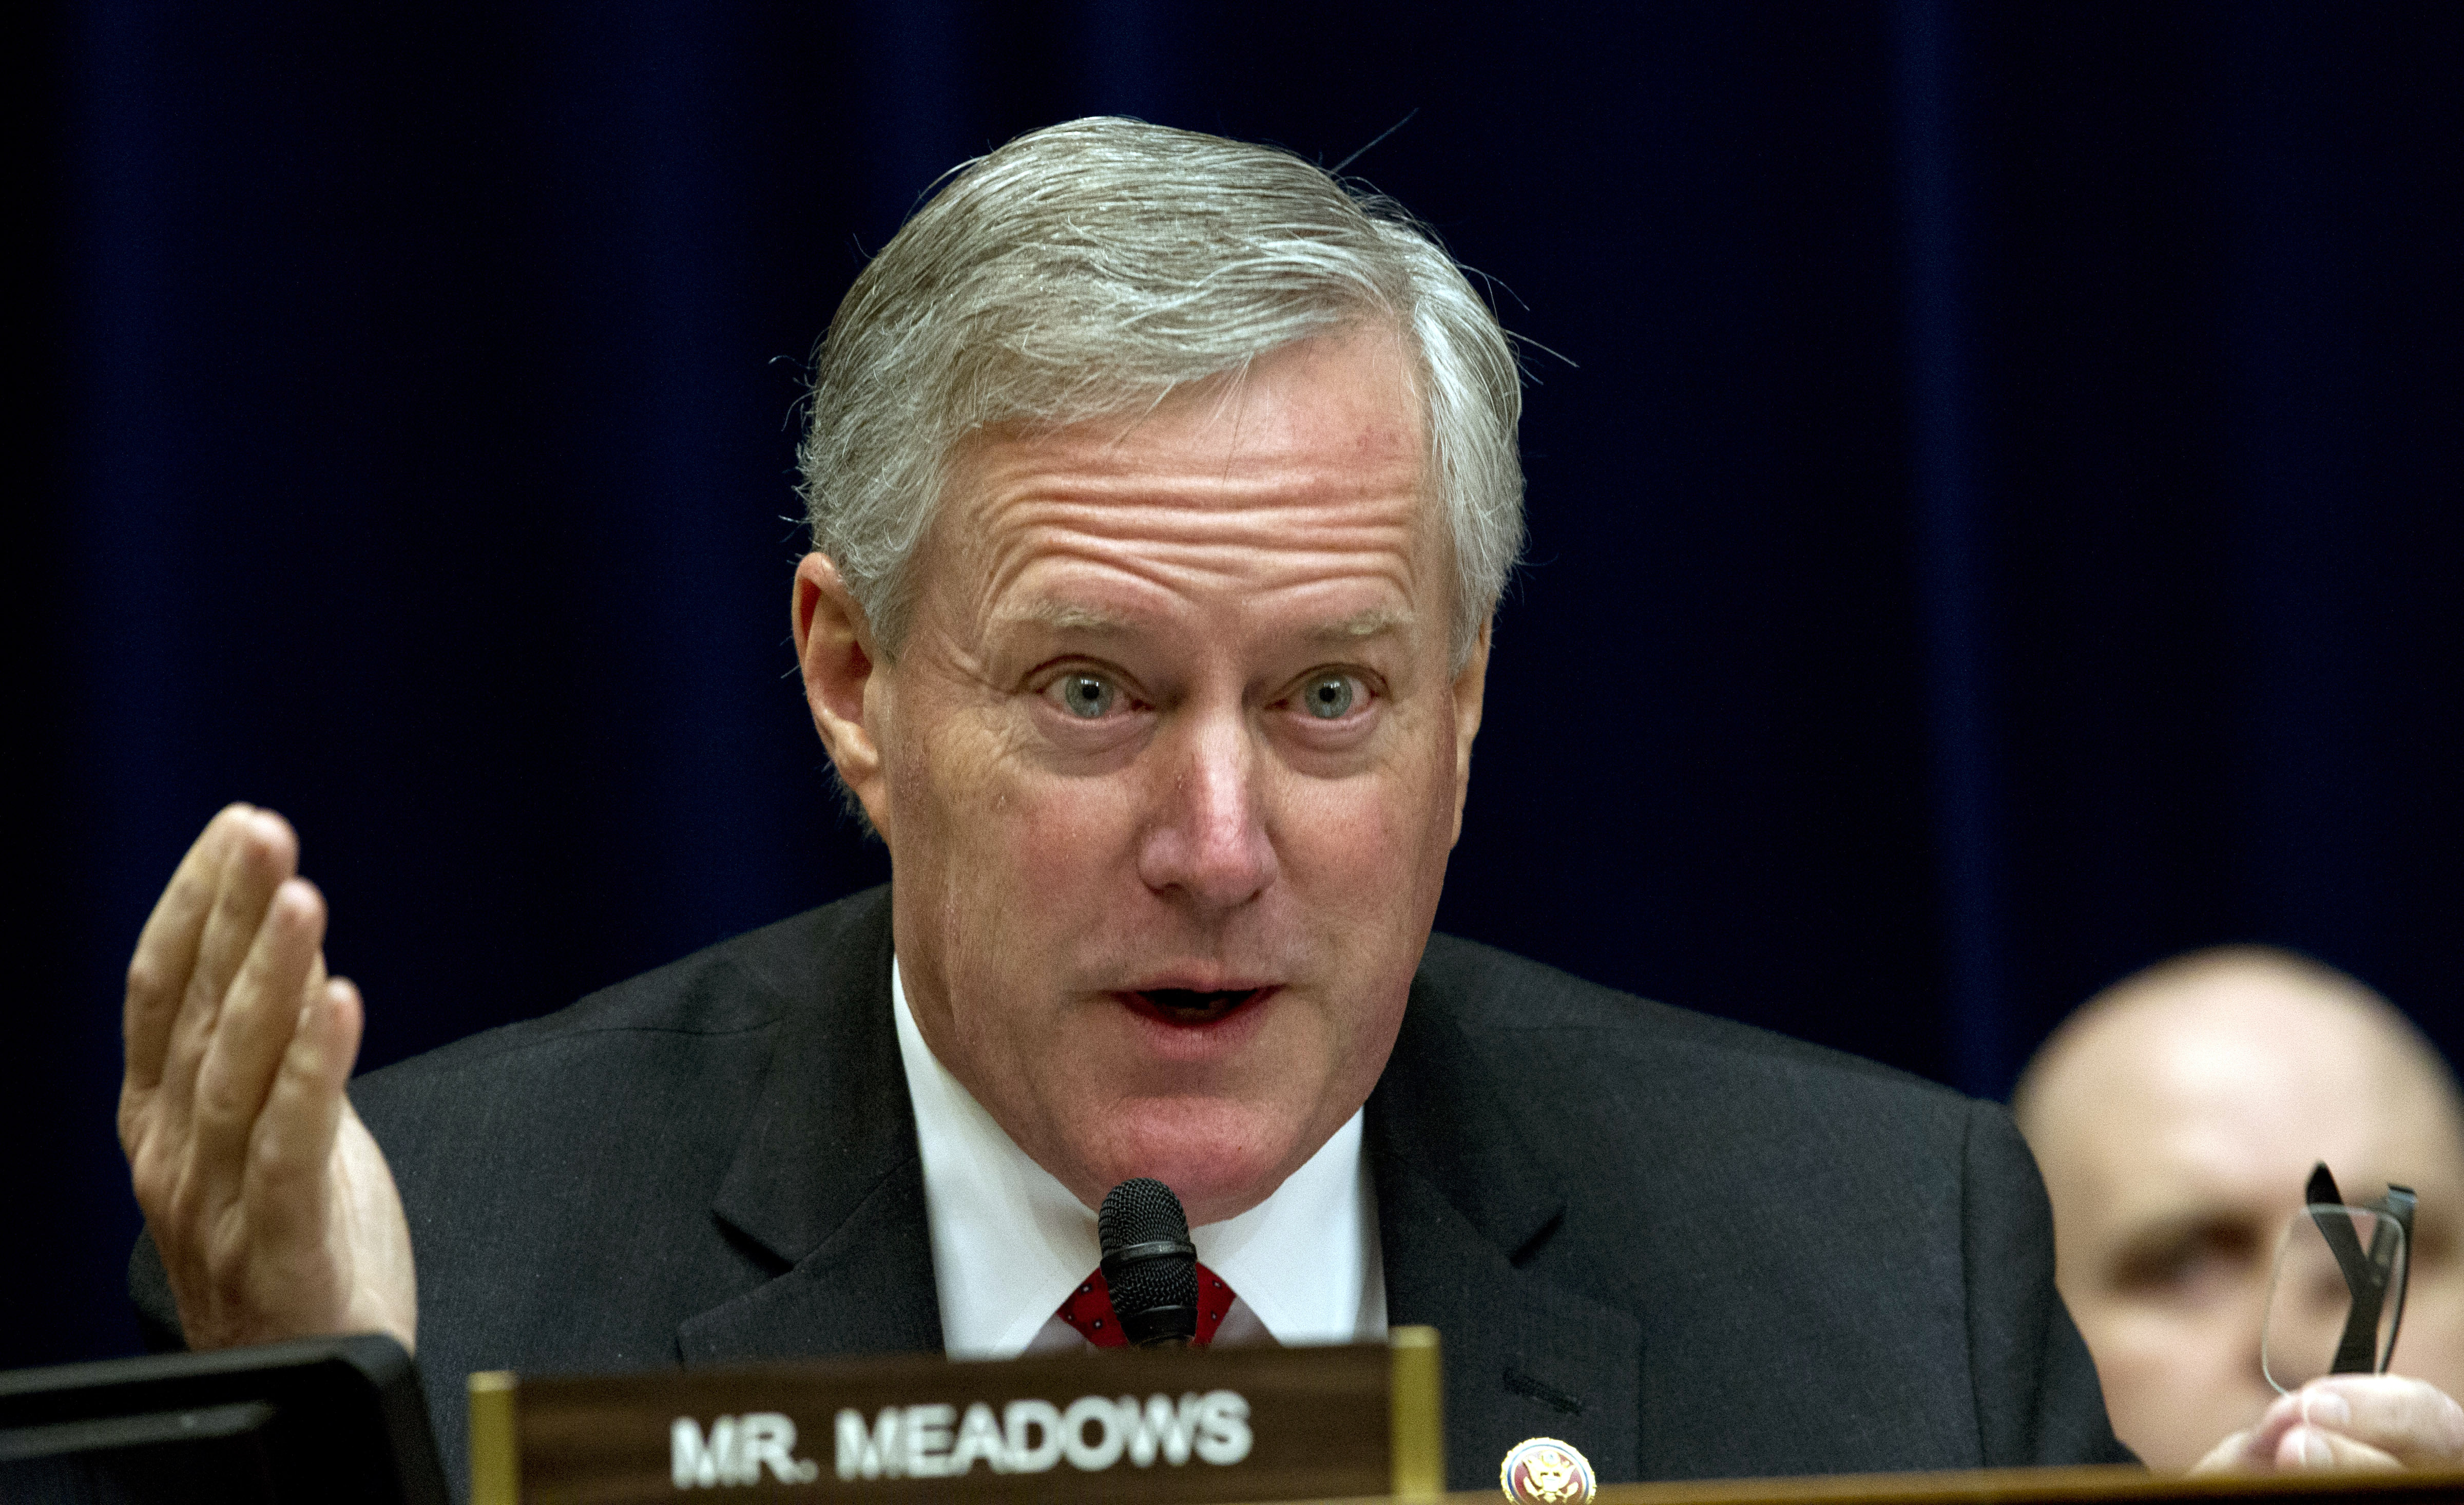 Westlake Legal Group f0d15faf-AP19073620492262 Trump announces Mark Meadows to replace Mick Mulvaney as White House chief of staff Joseph Wulfsohn fox-news/us/congress fox-news/tech/companies/twitter fox-news/politics/executive/white-house fox-news/person/donald-trump fox news fnc/politics fnc article 3ea7956a-13f5-54e1-9193-afdcf7d97371